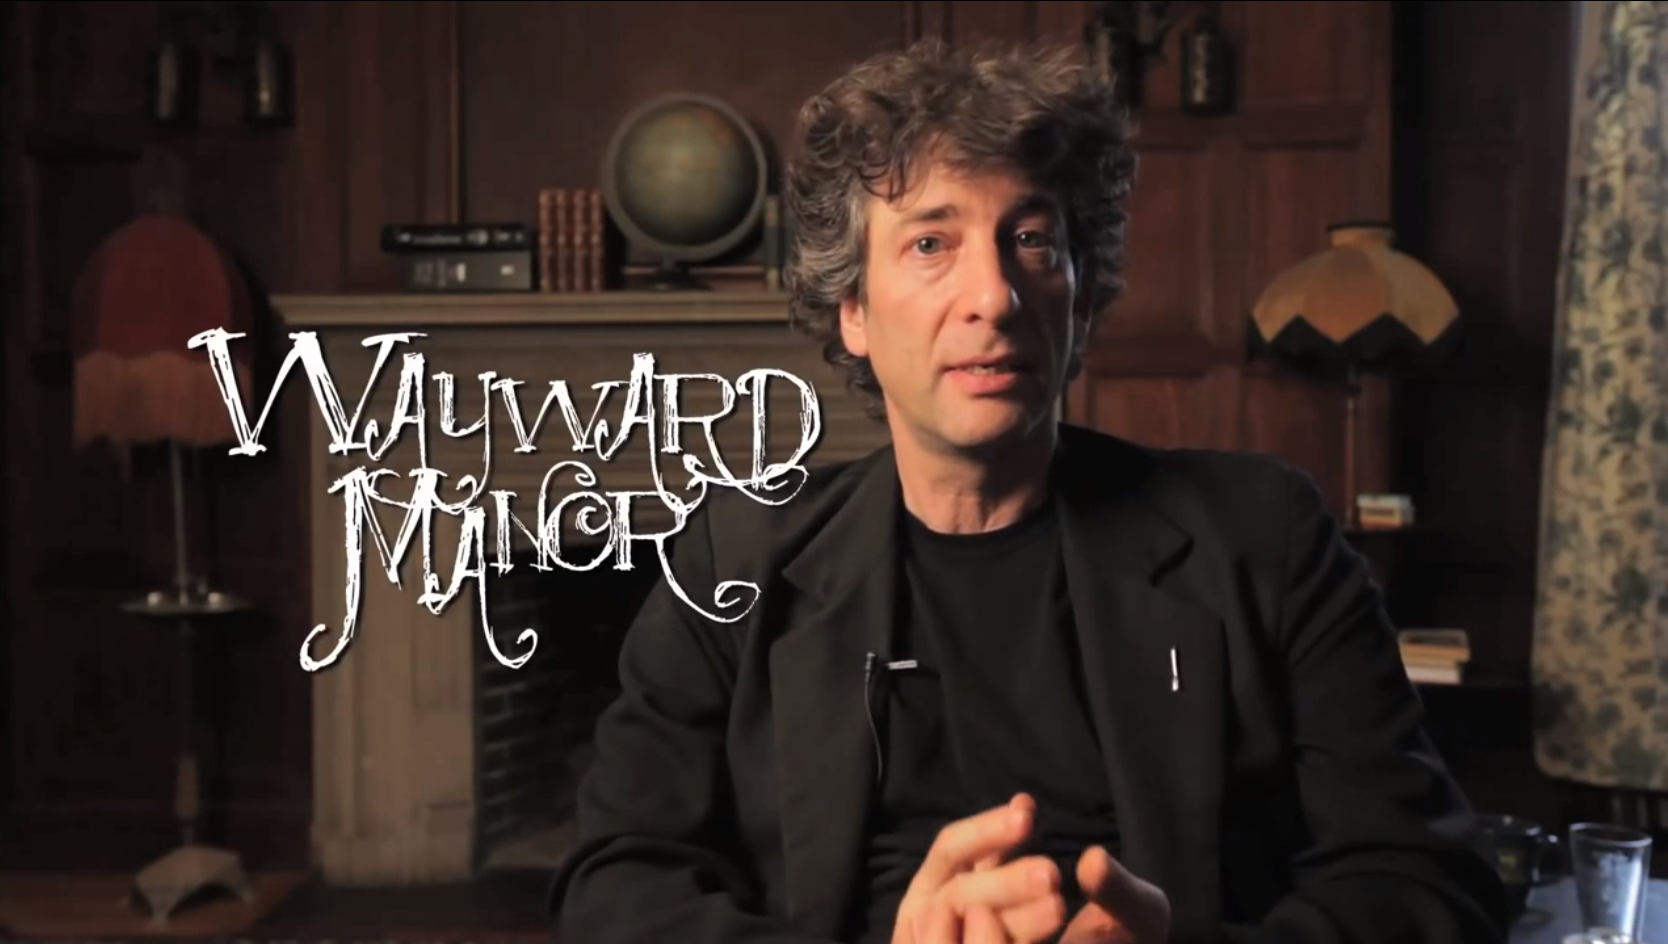 Wayward Manor - Neil Gaiman's Foray Into Video Games